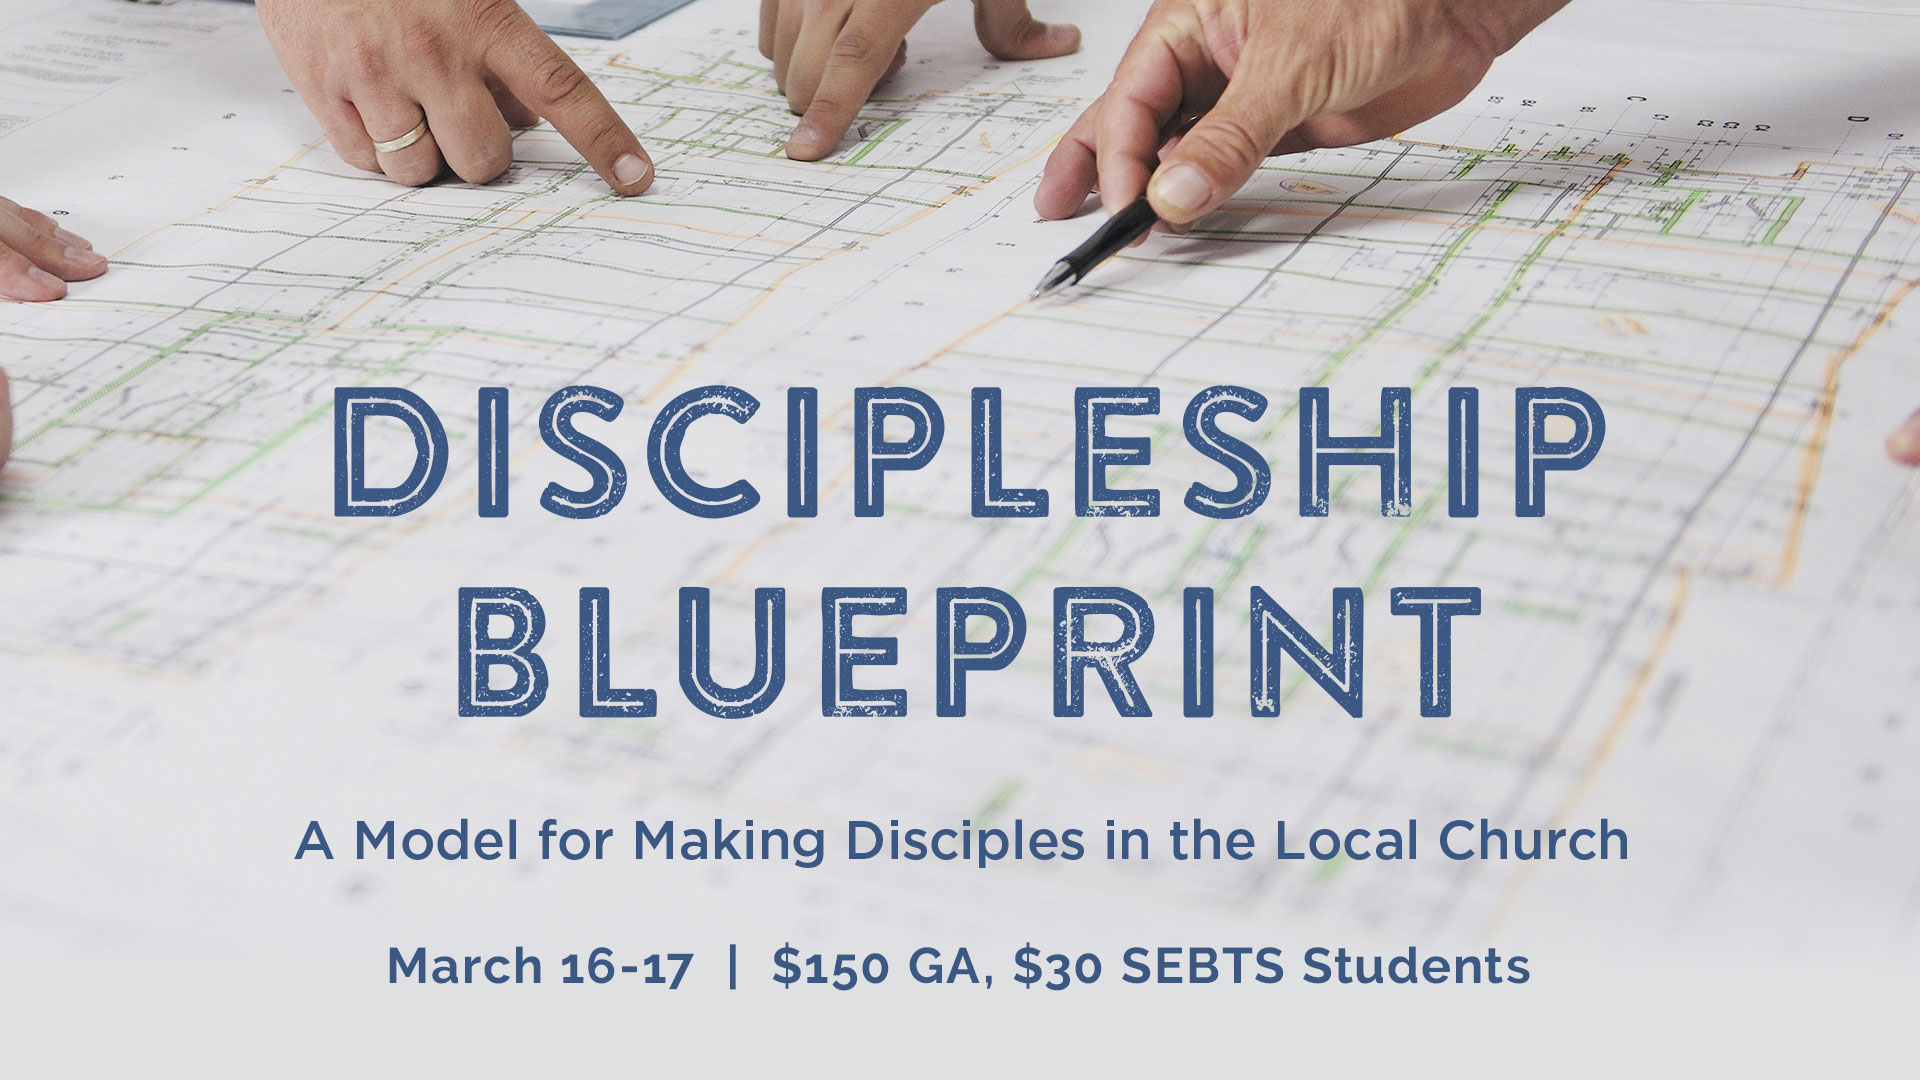 Discipleship blueprint march 16 17 around southeastern discipleship blueprint march 16 17 malvernweather Image collections